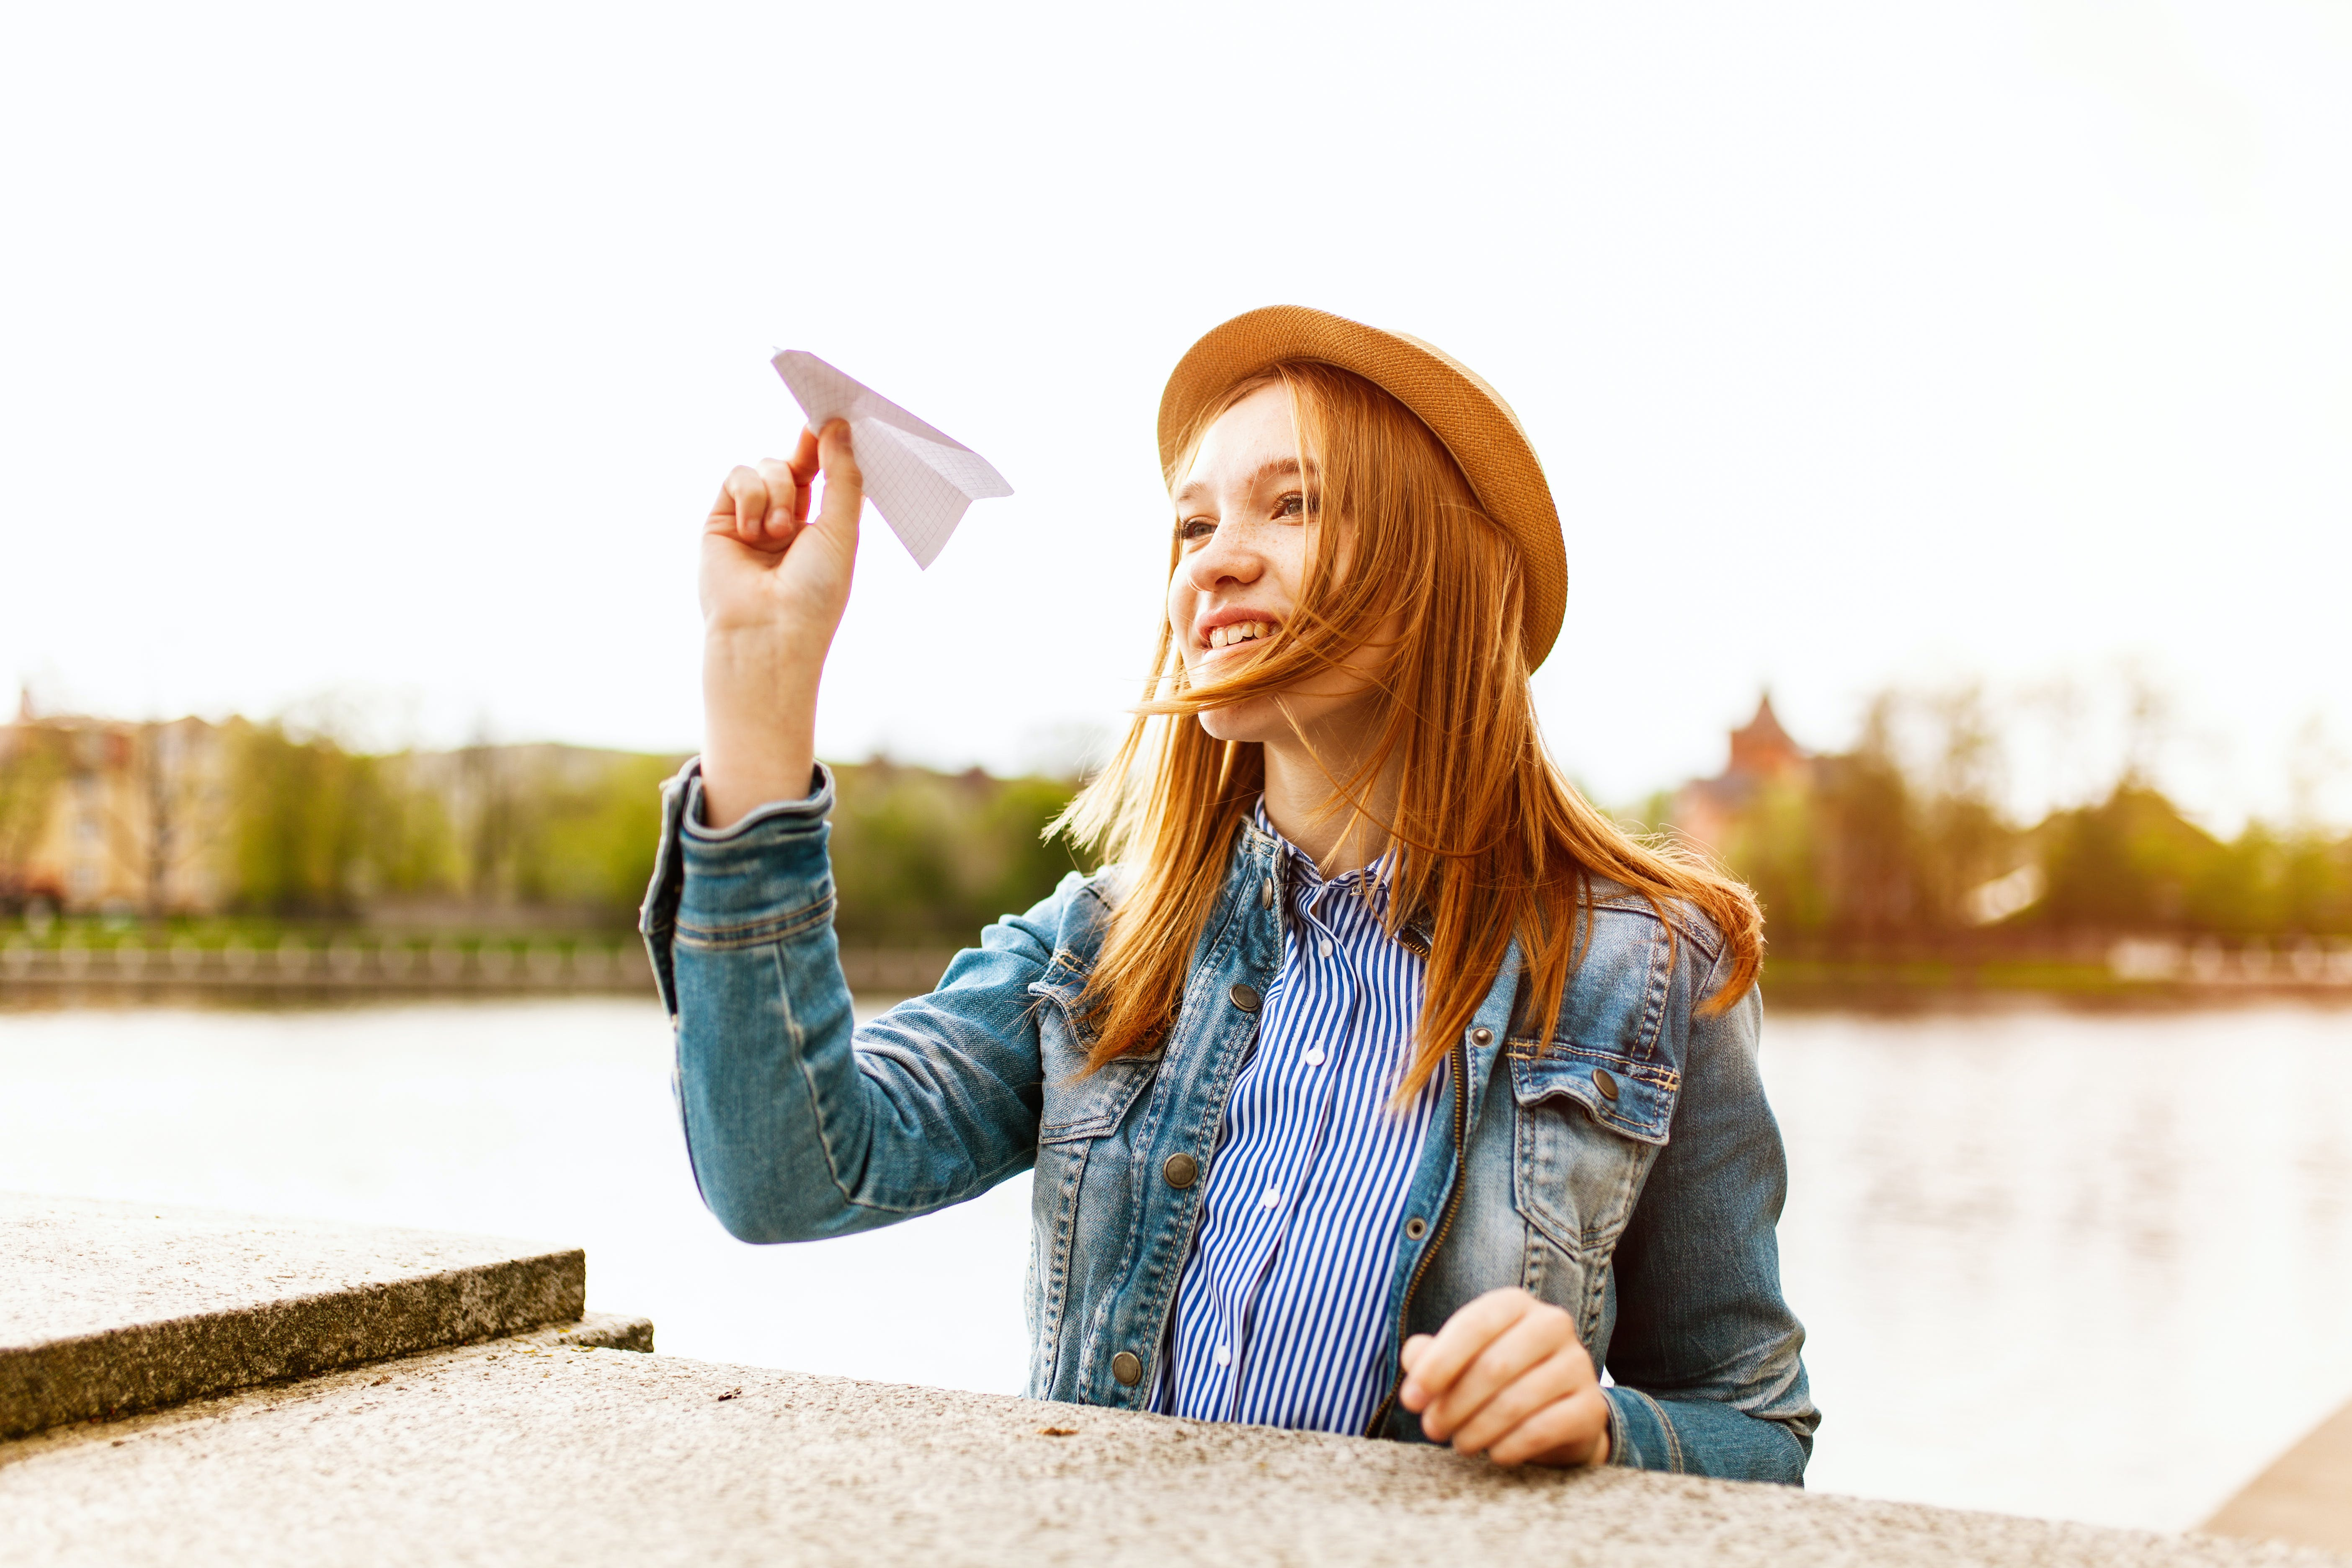 Woman in Blue Denim Button-up Jacket and Brown Hat About to Fly a Paper Plane Beside a Body of Water